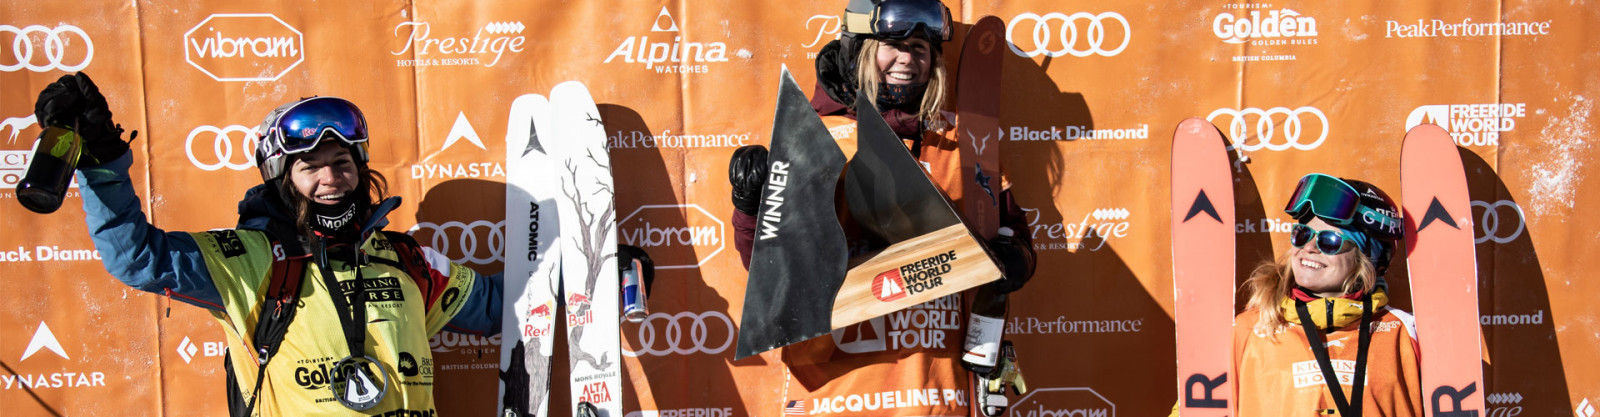 Hazel Birnbaum finit 3ème de la seconde étape du Freeride World Tour à Kicking Horse